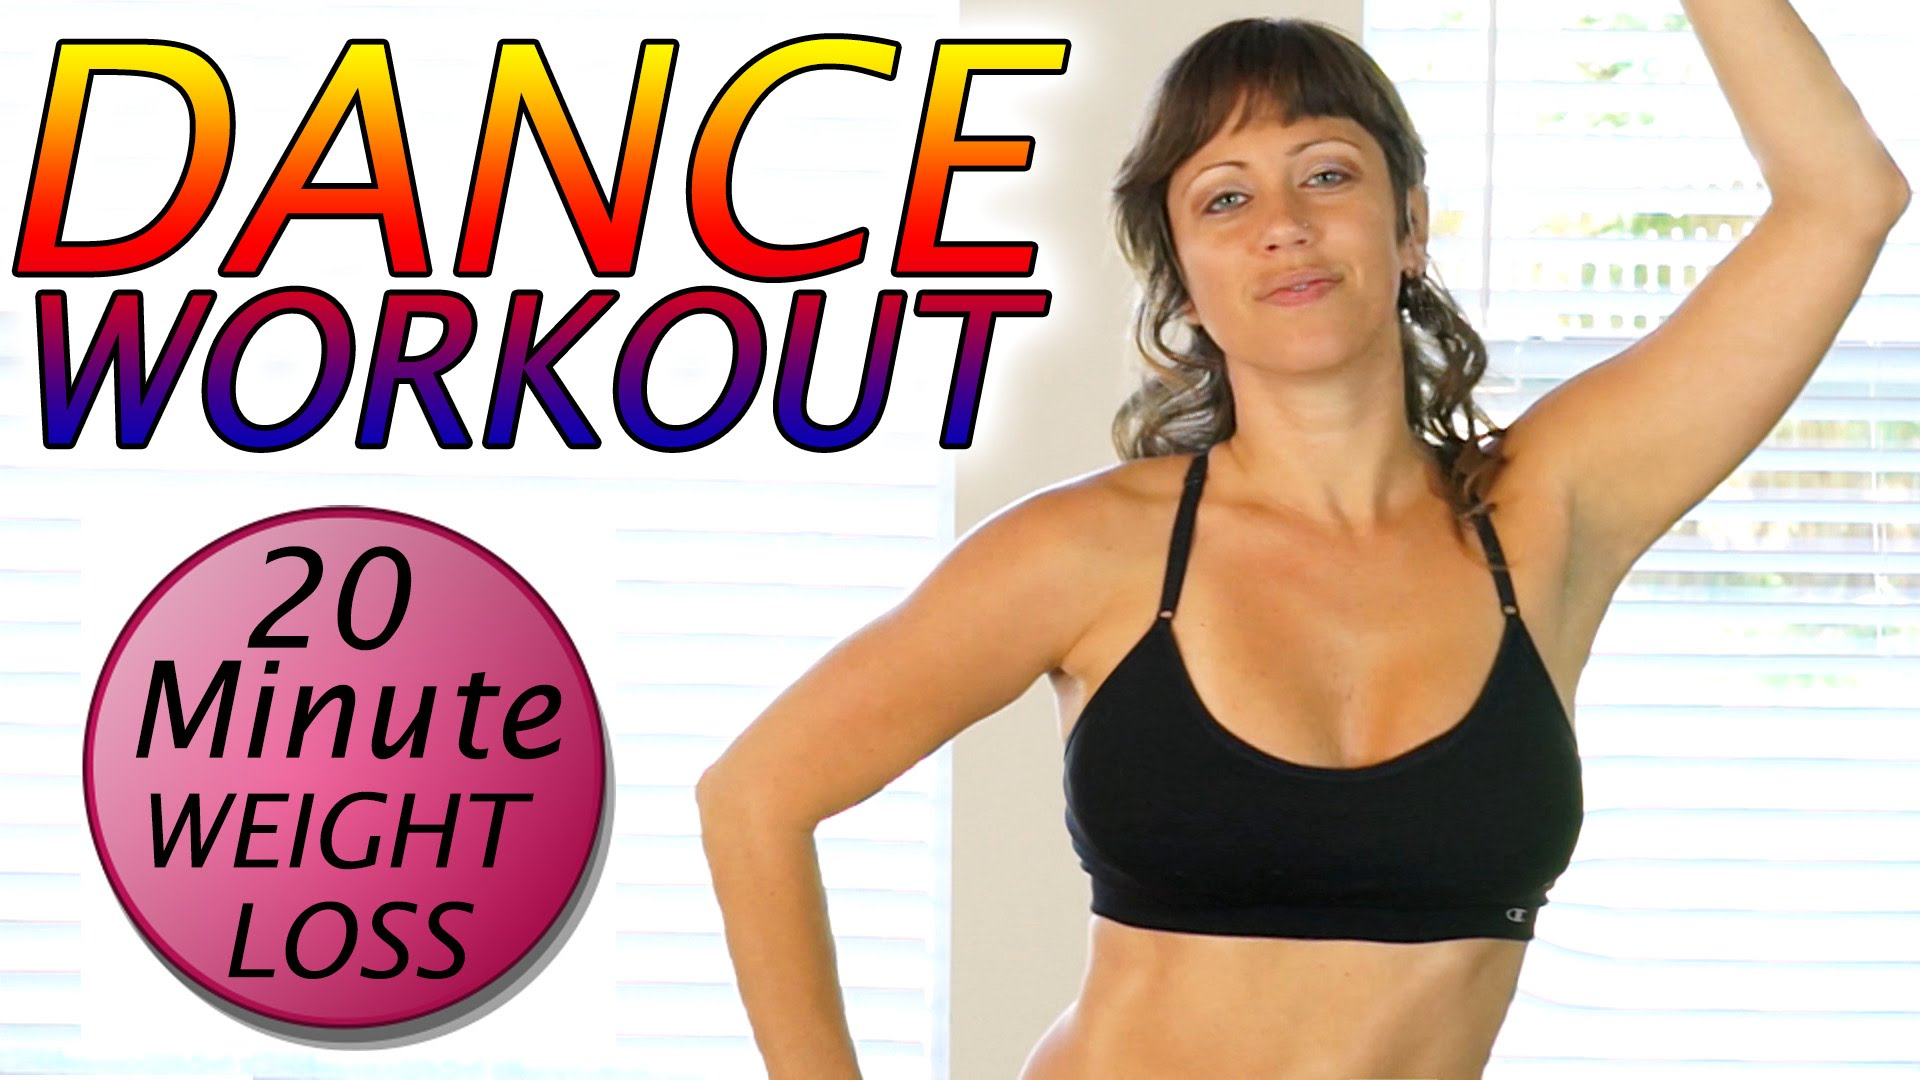 Dance Workout For Beginners At Home Cardio Weight Loss Aerobic Exercises Fitya